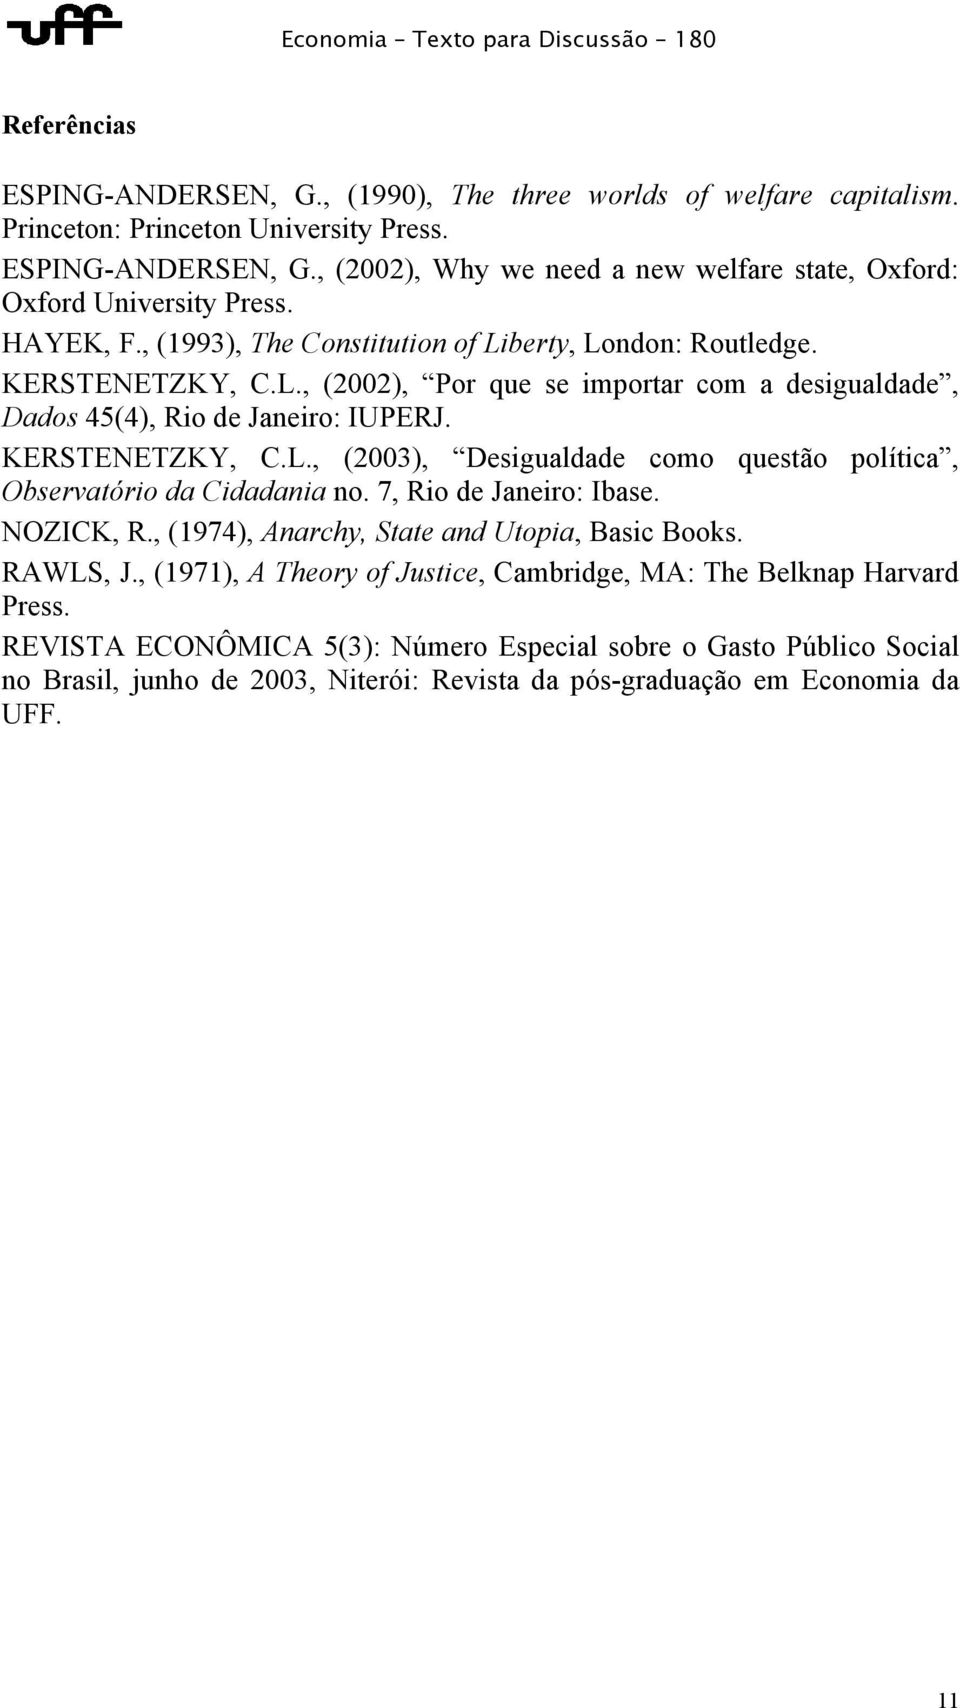 7, Rio de Janeiro: Ibase. NOZICK, R., (1974), Anarchy, State and Utopia, Basic Books. RAWLS, J., (1971), A Theory of Justice, Cambridge, MA: The Belknap Harvard Press.